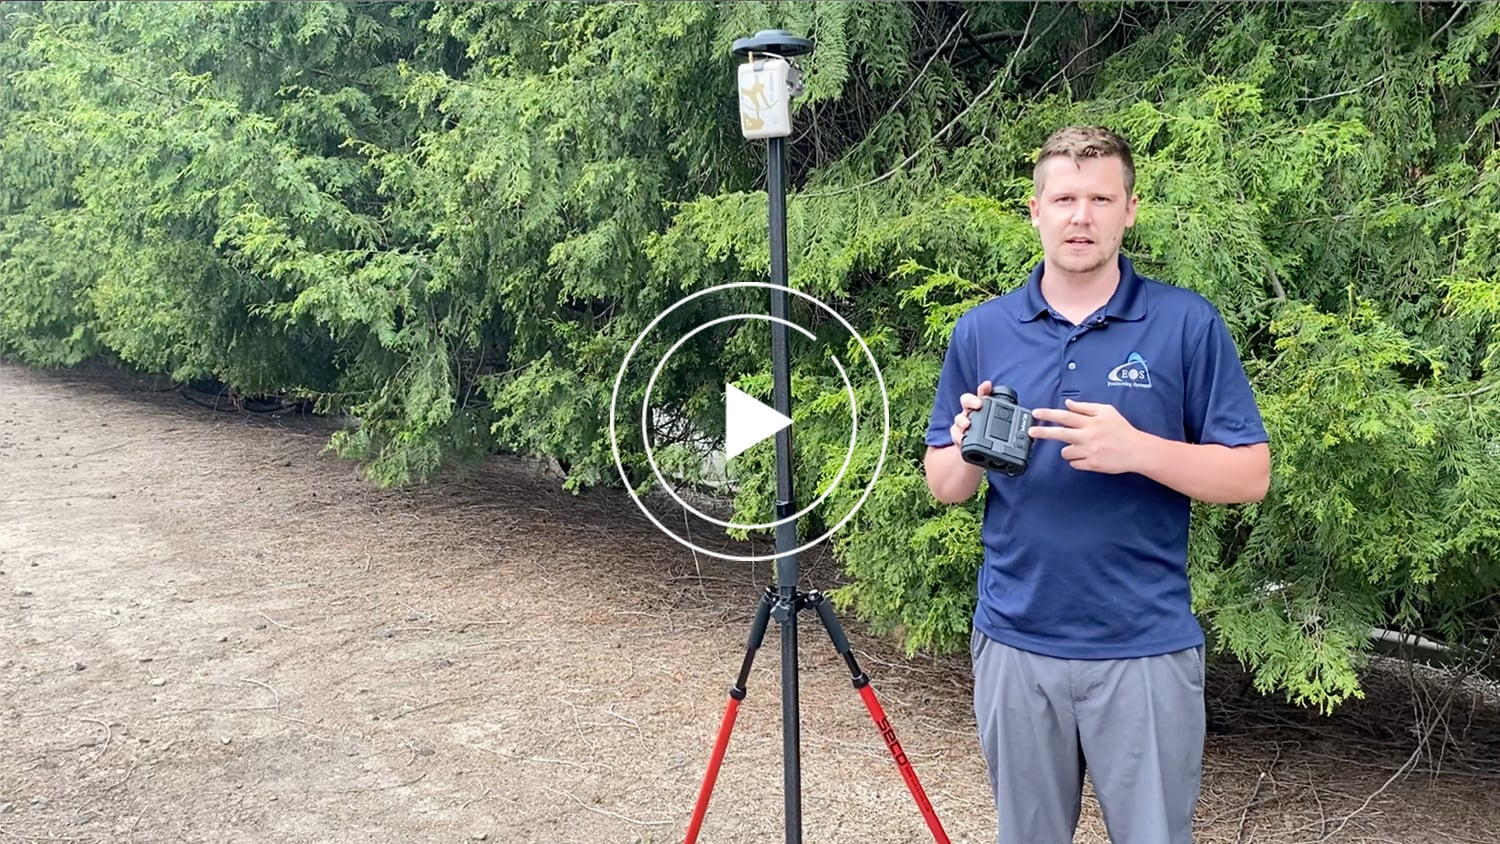 Eos Laser Mapping Choose Your GPS Workflow Laser Tech LTI, Arrow, GNSS, GIS, Laser, Mapping, Mobile, Offset, Sideshot GIS GNSS